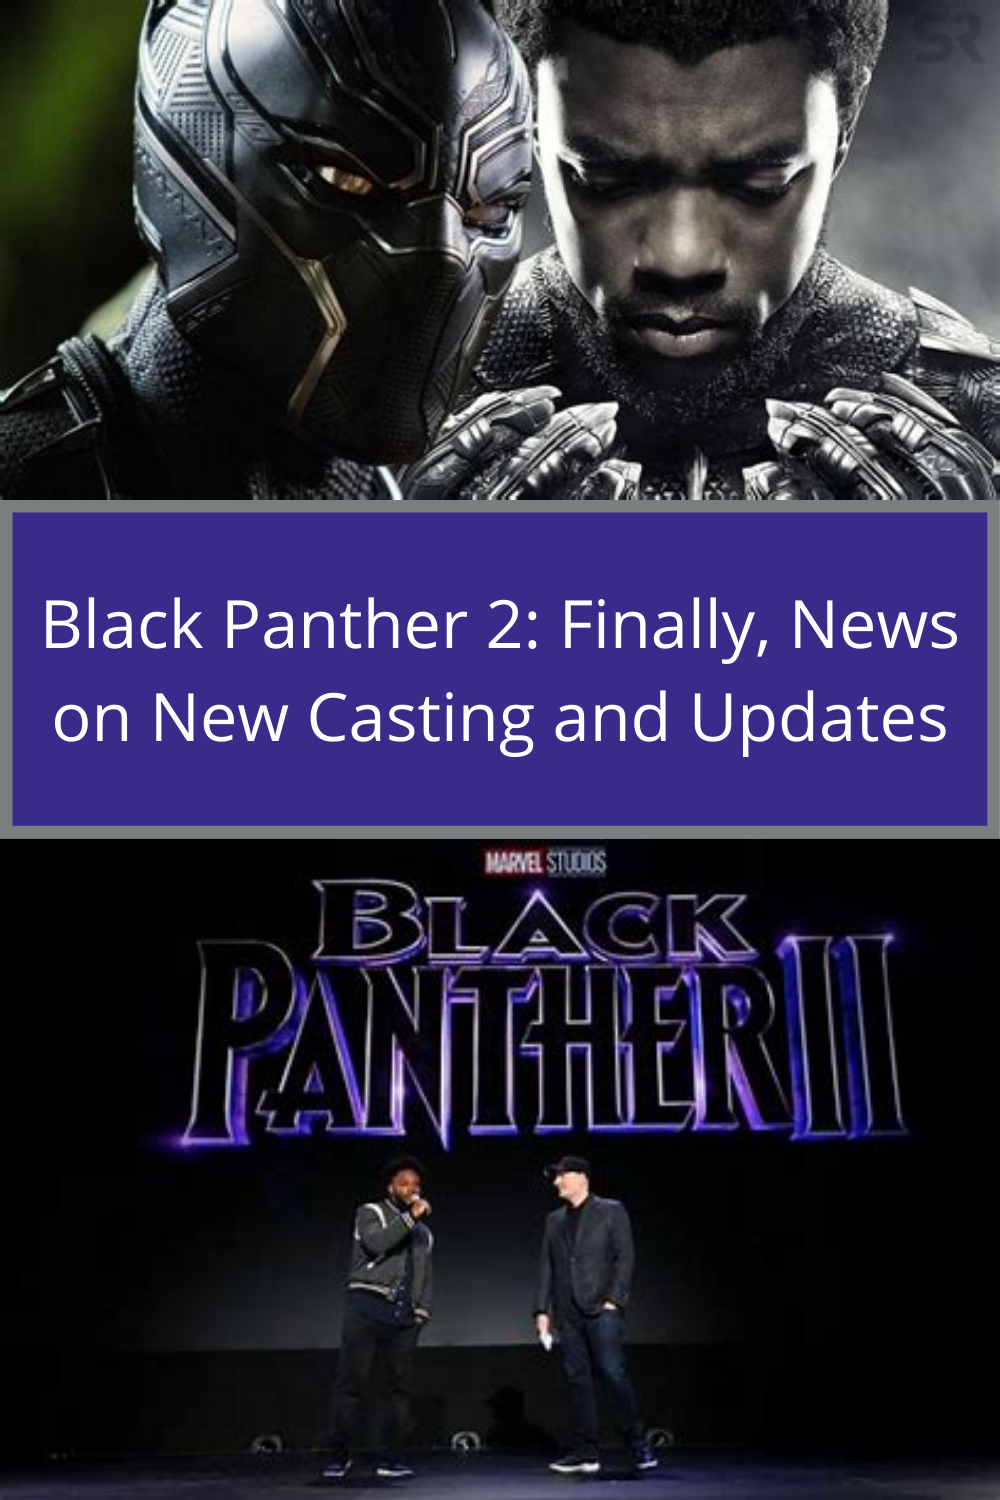 Black Panther 2 Black Panther It Cast Panther